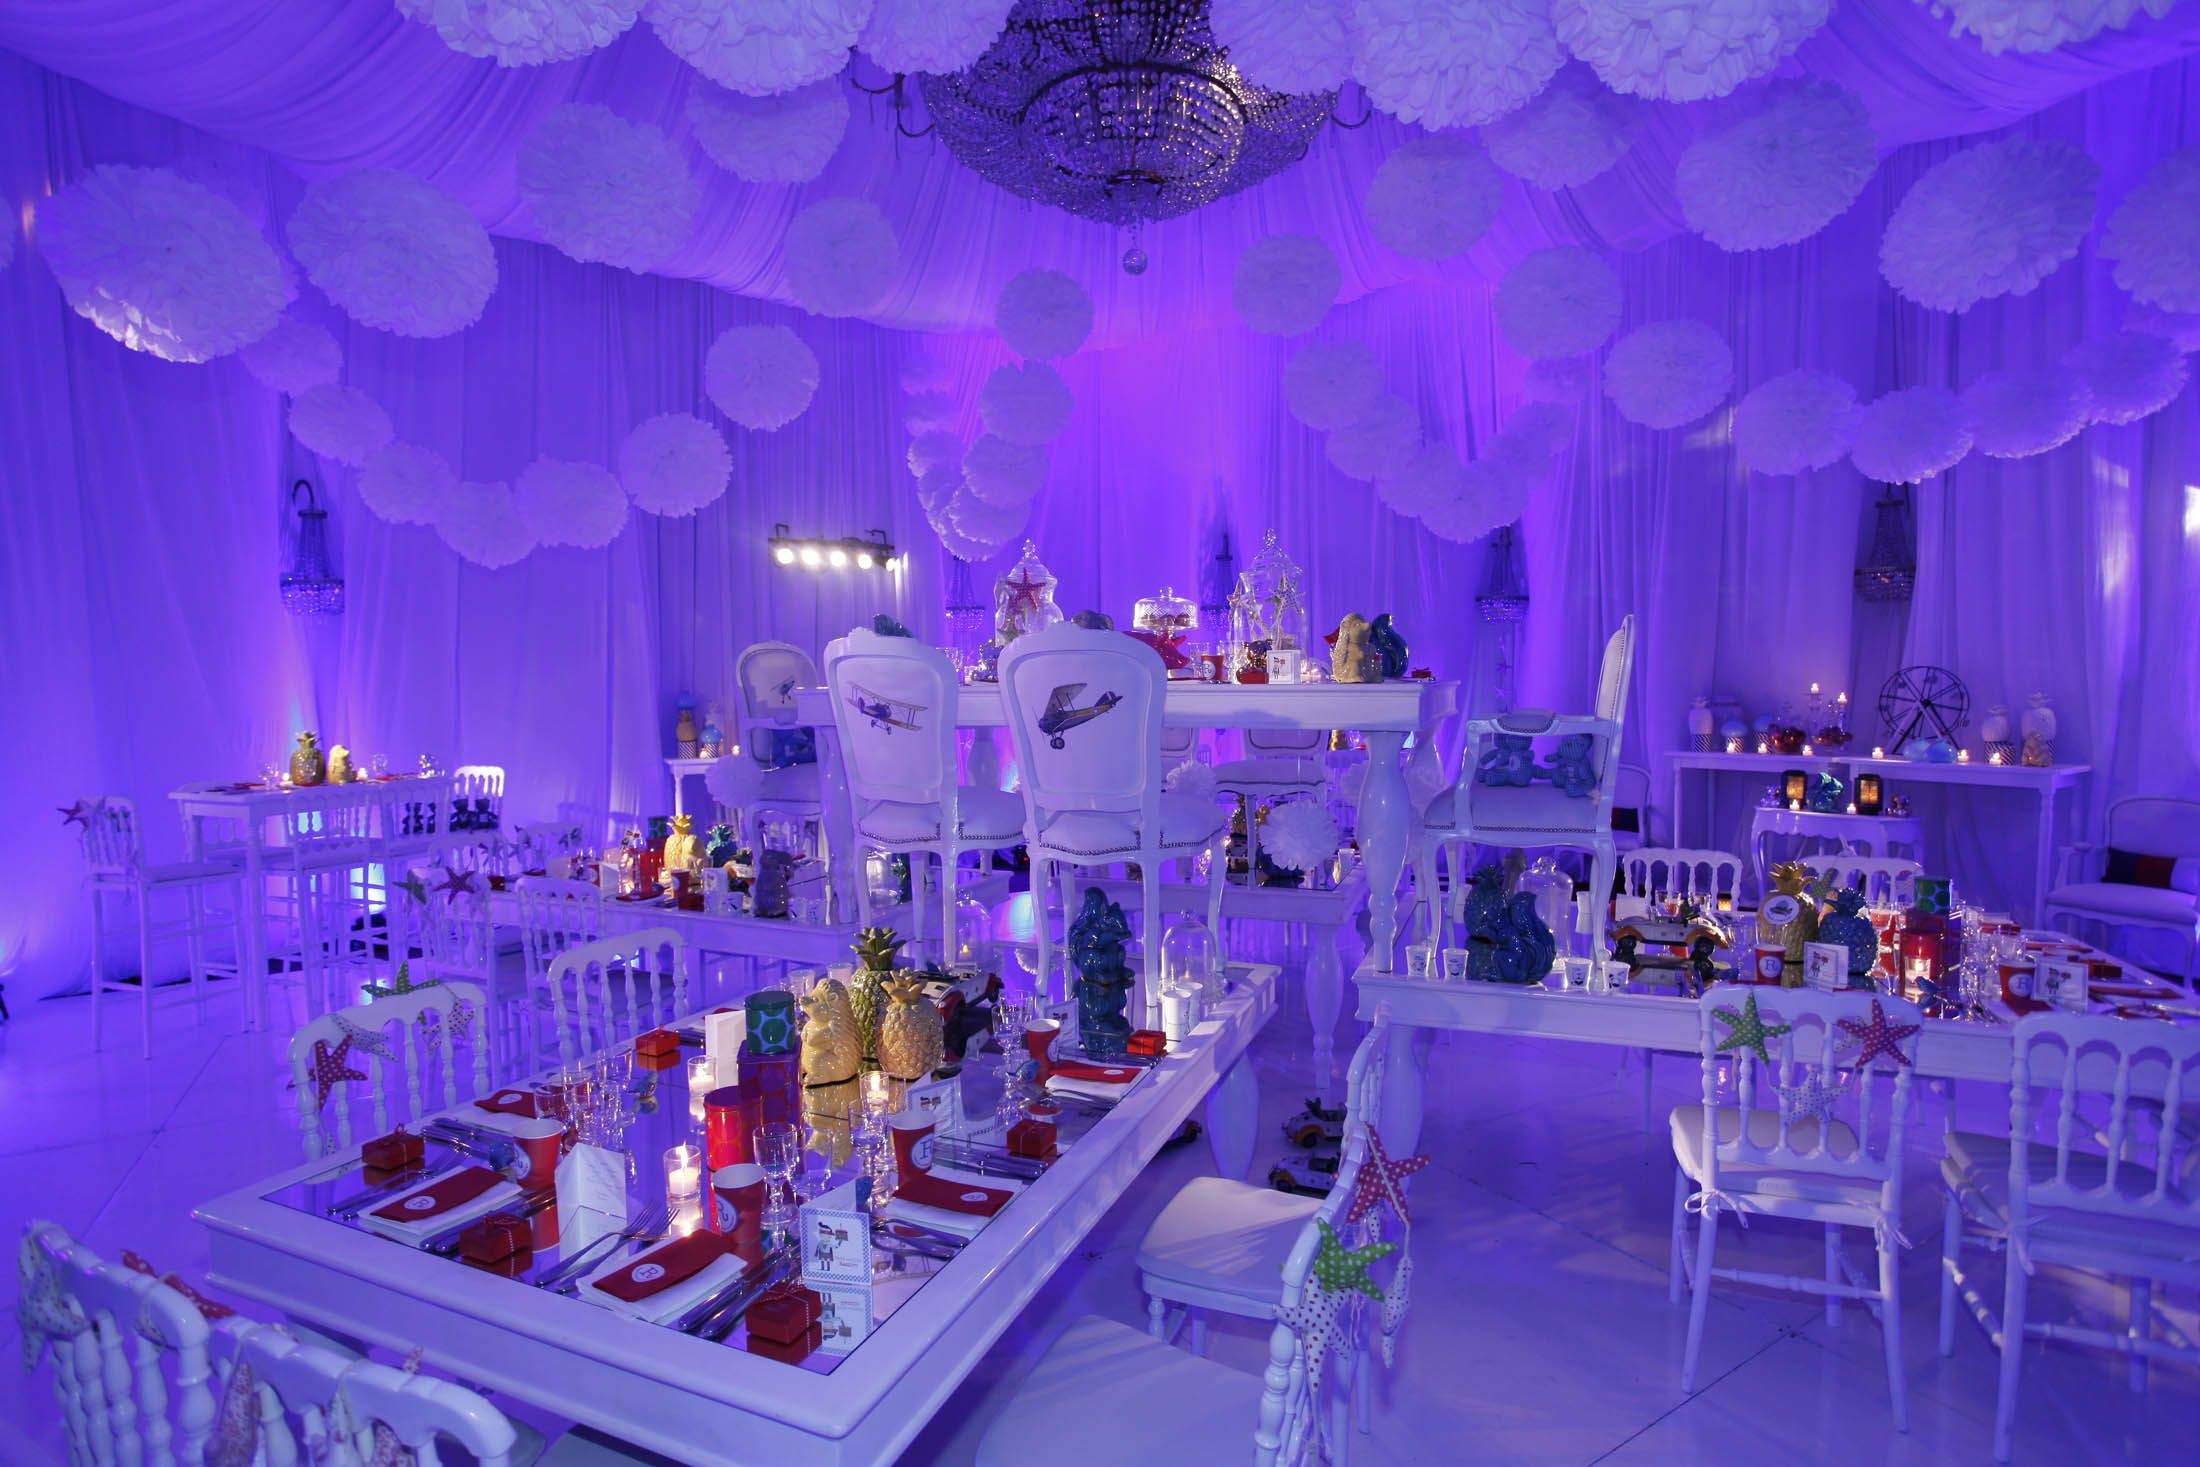 Paginas de ambientaciones para eventos buscar con google for Pinterest decoracion salones